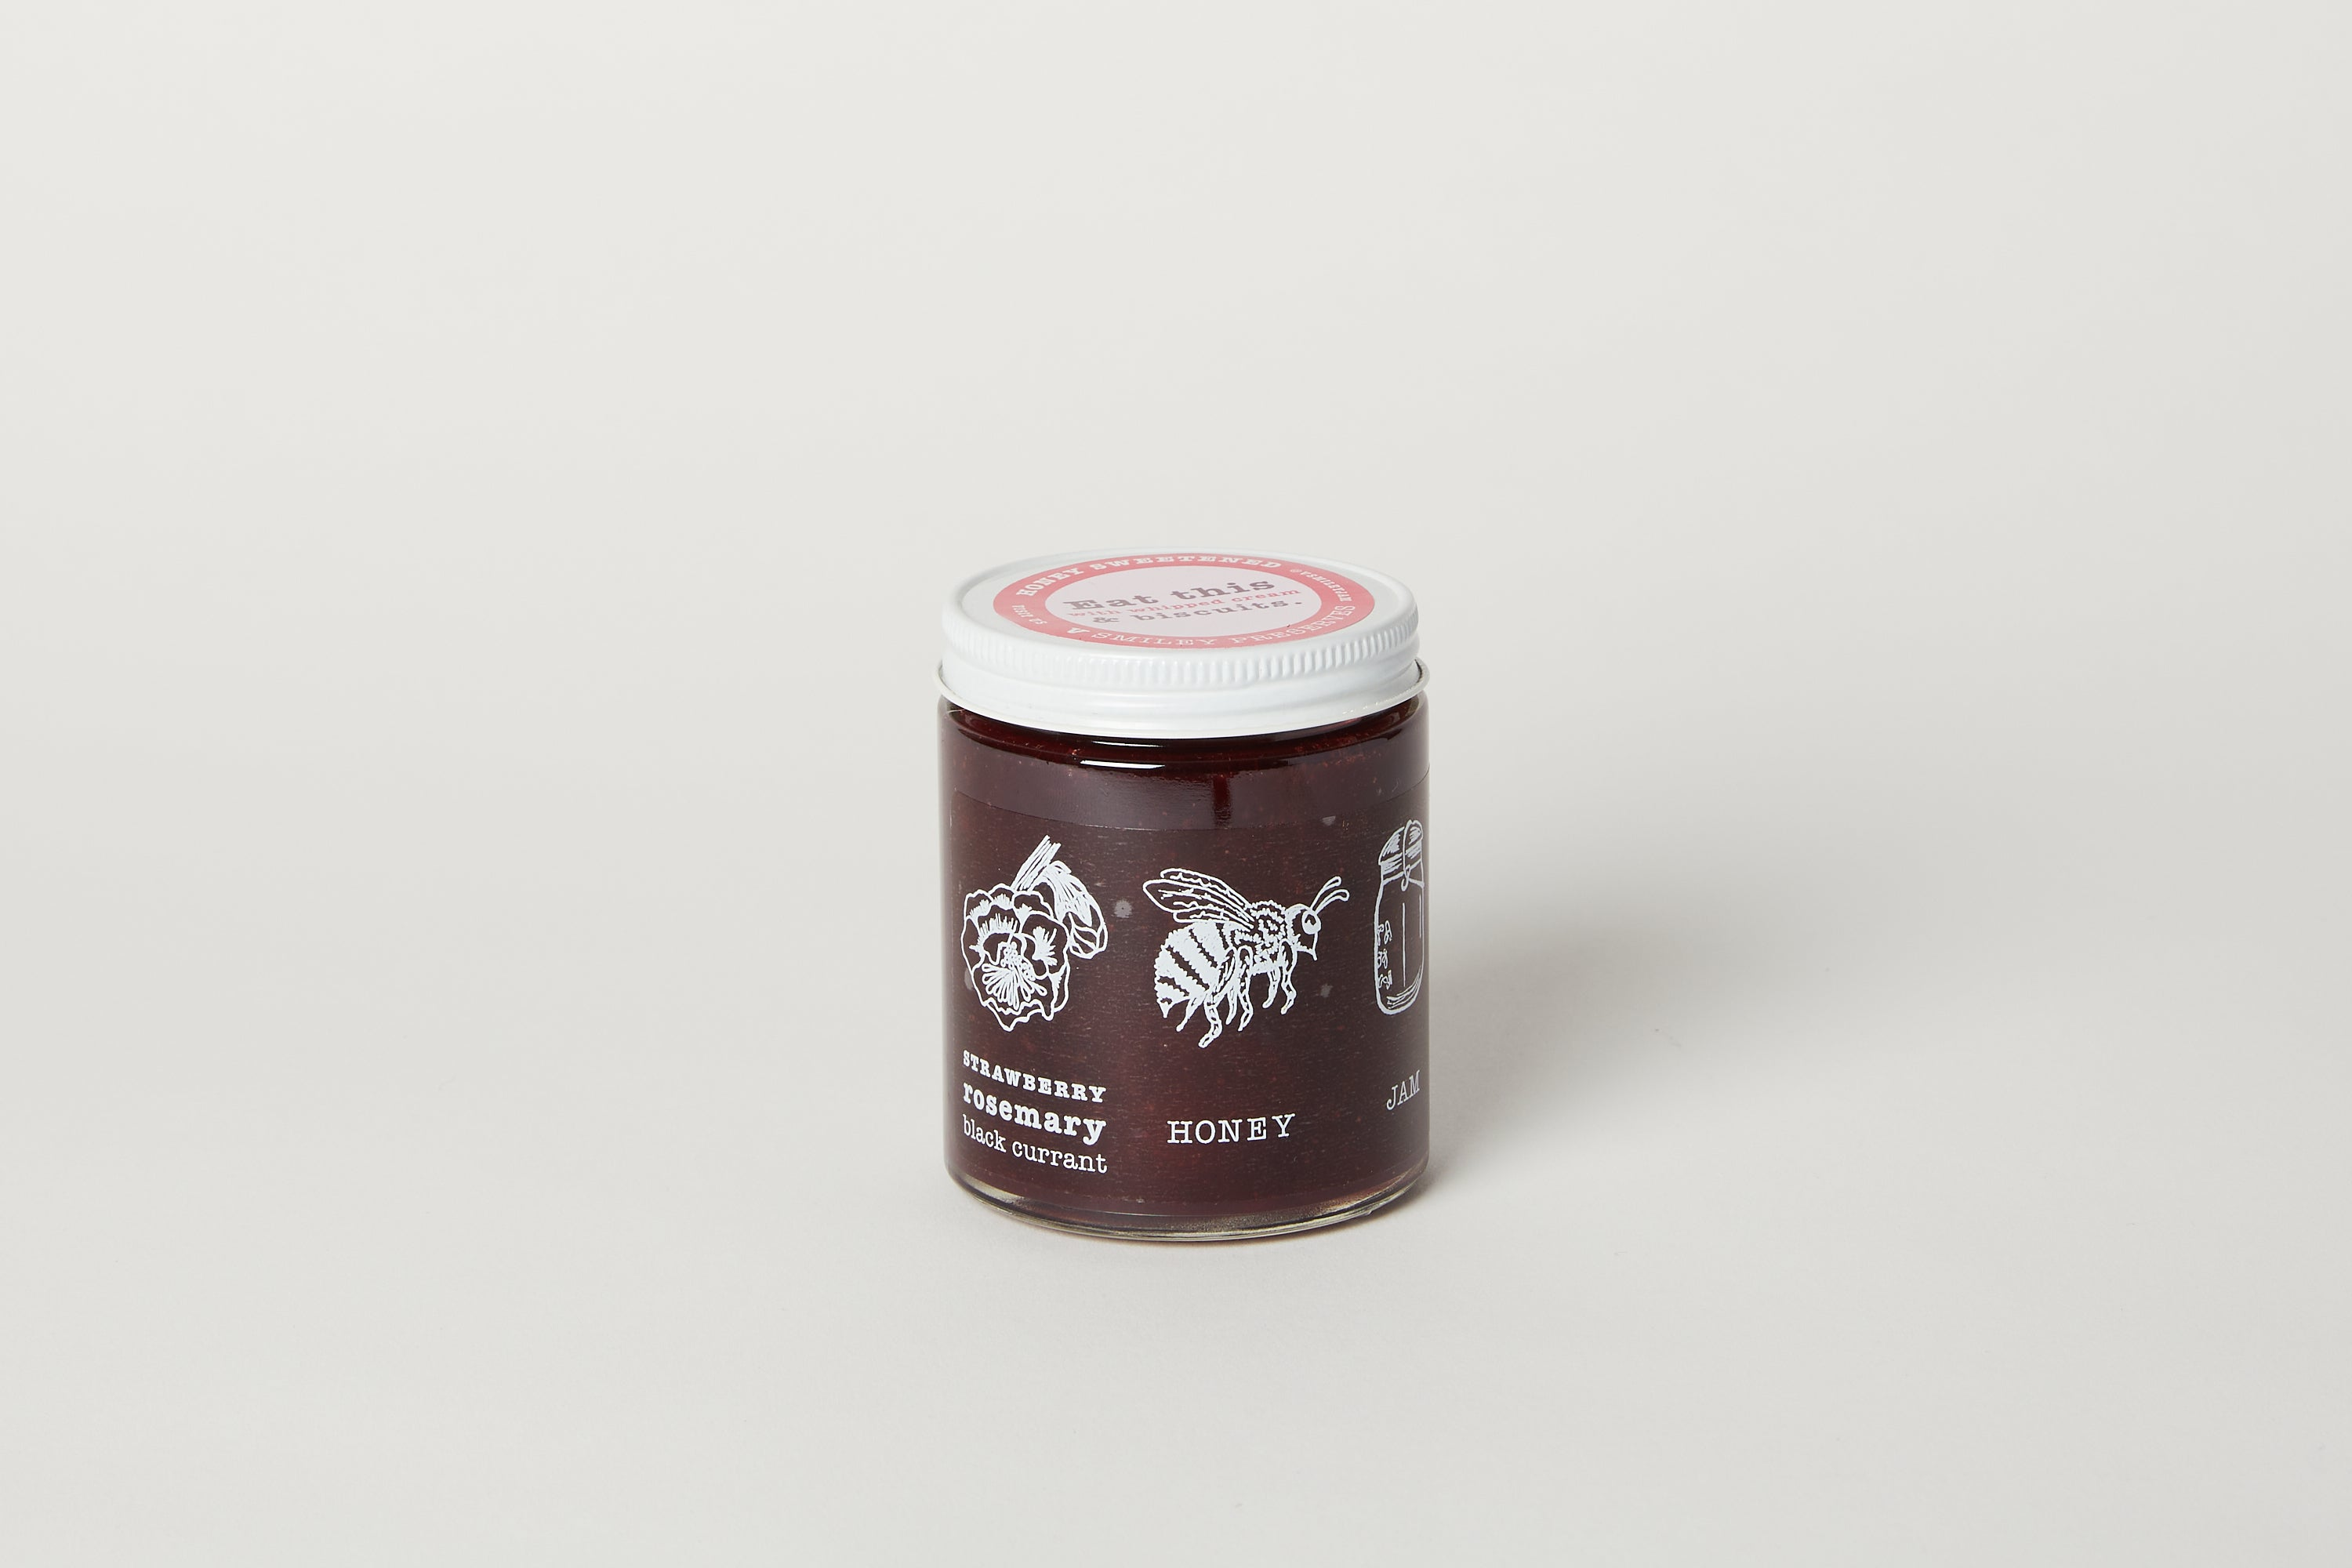 Strawberry Blackcurrant Rosemary Jam